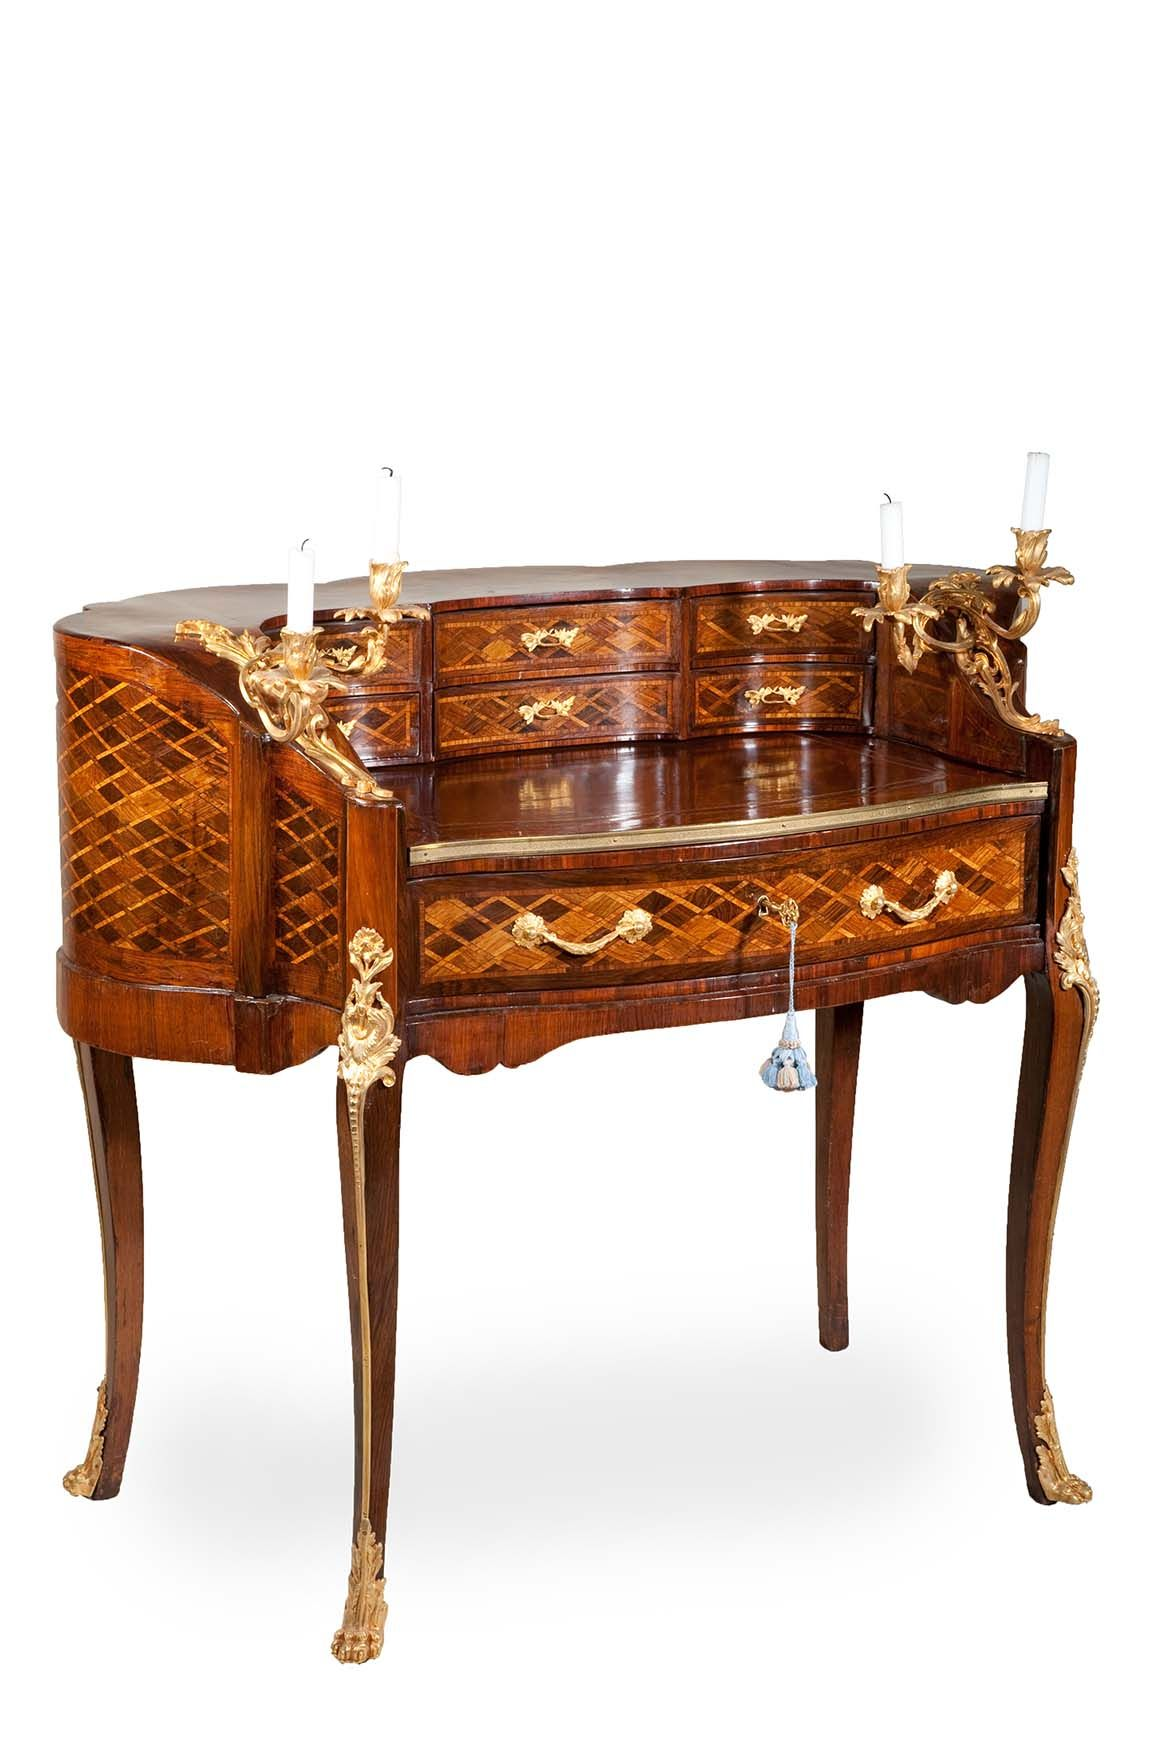 Google Image Result for http://www.antiquefurniture .com/wp-content/uploads/2011/02/antique-rococo-furniture.jpg - Louis XV, Rococo: Furniture And Decorative Arts Rococo, French